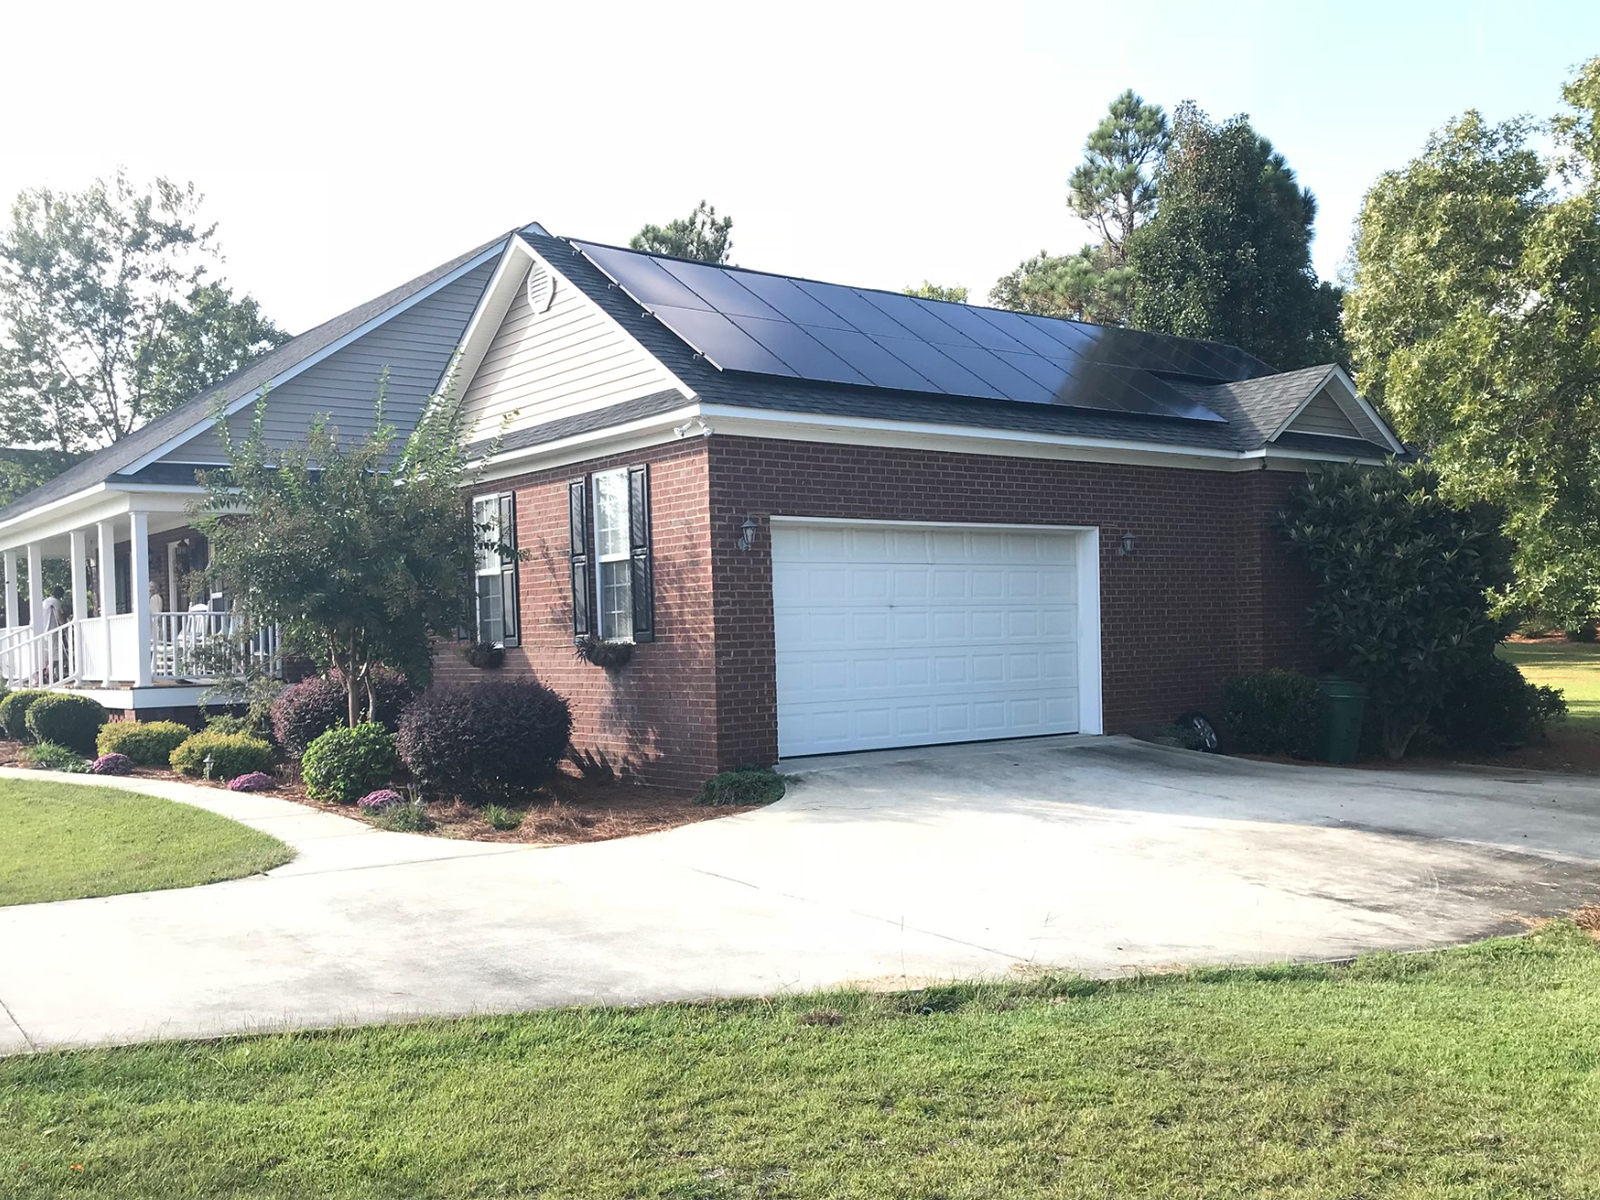 RSRV Power, Residence, NC